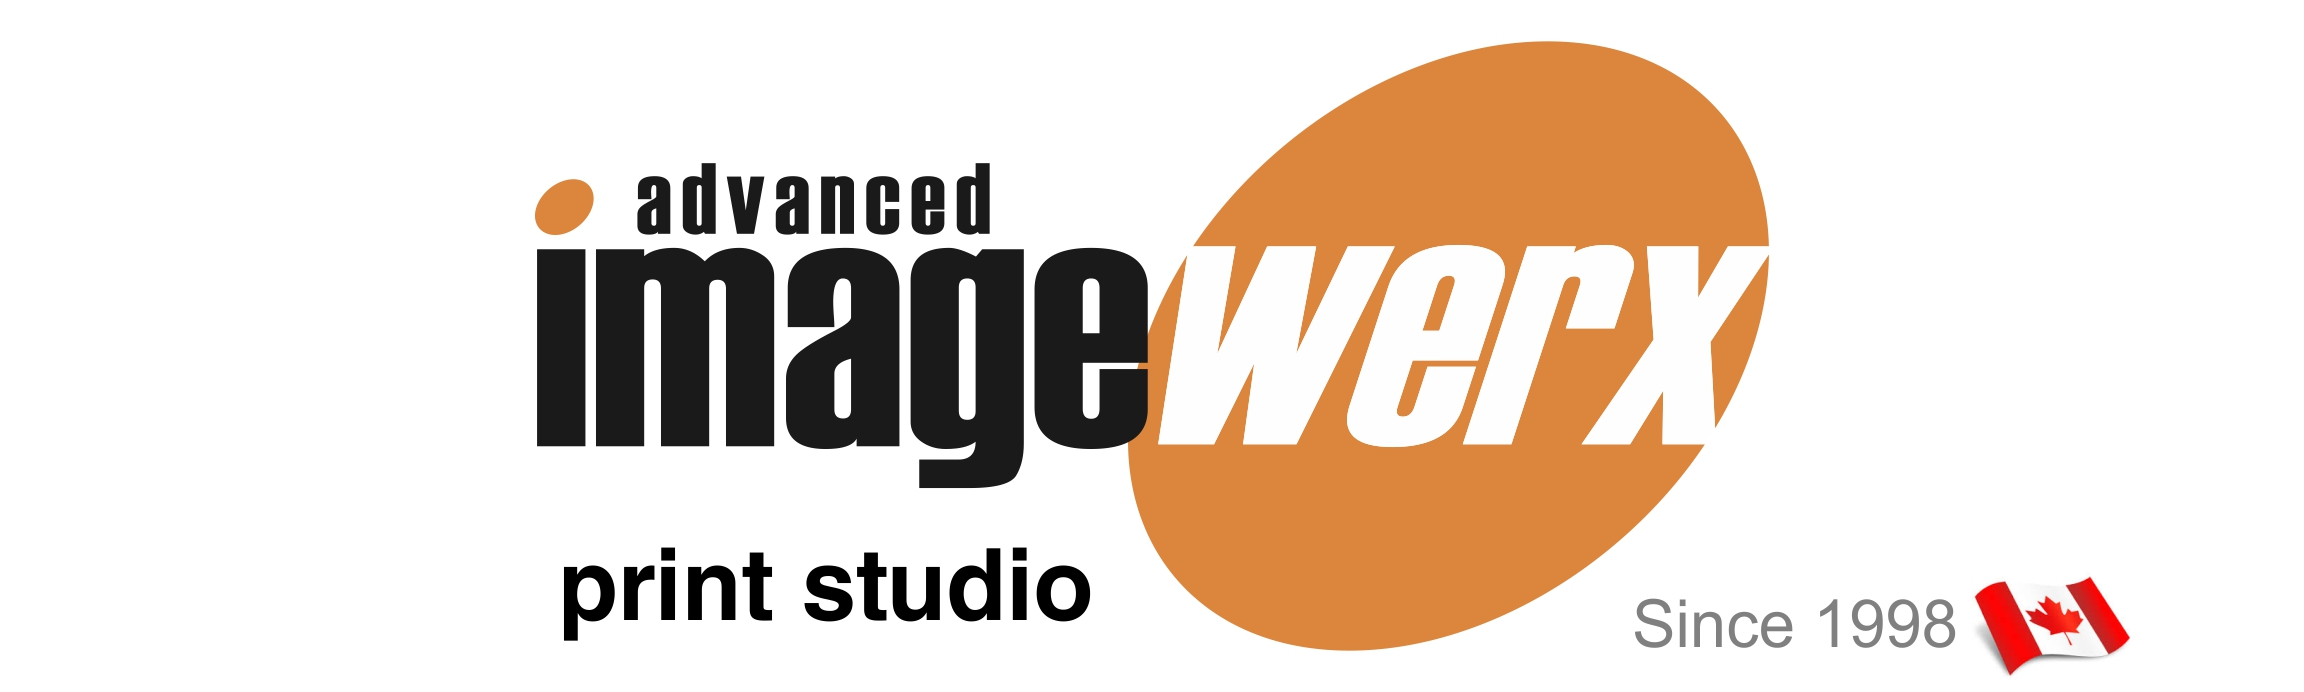 Advanced Imagewerx | Print Studio